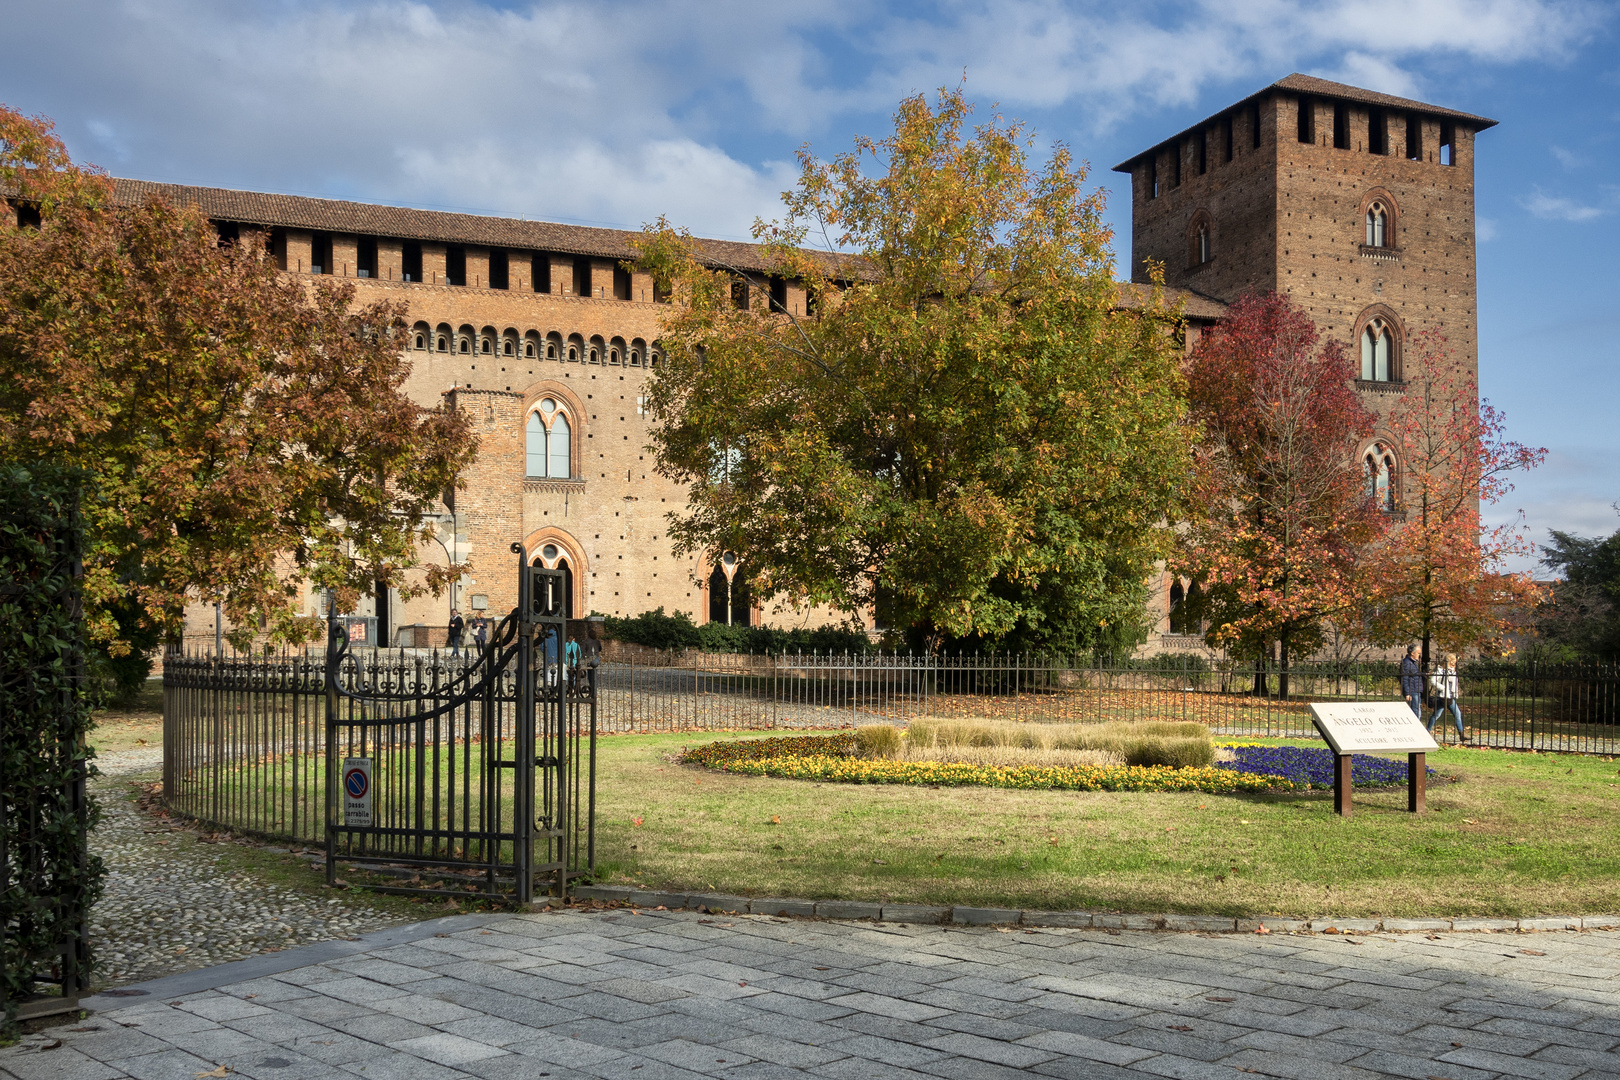 Castello Visconteo di Pavia